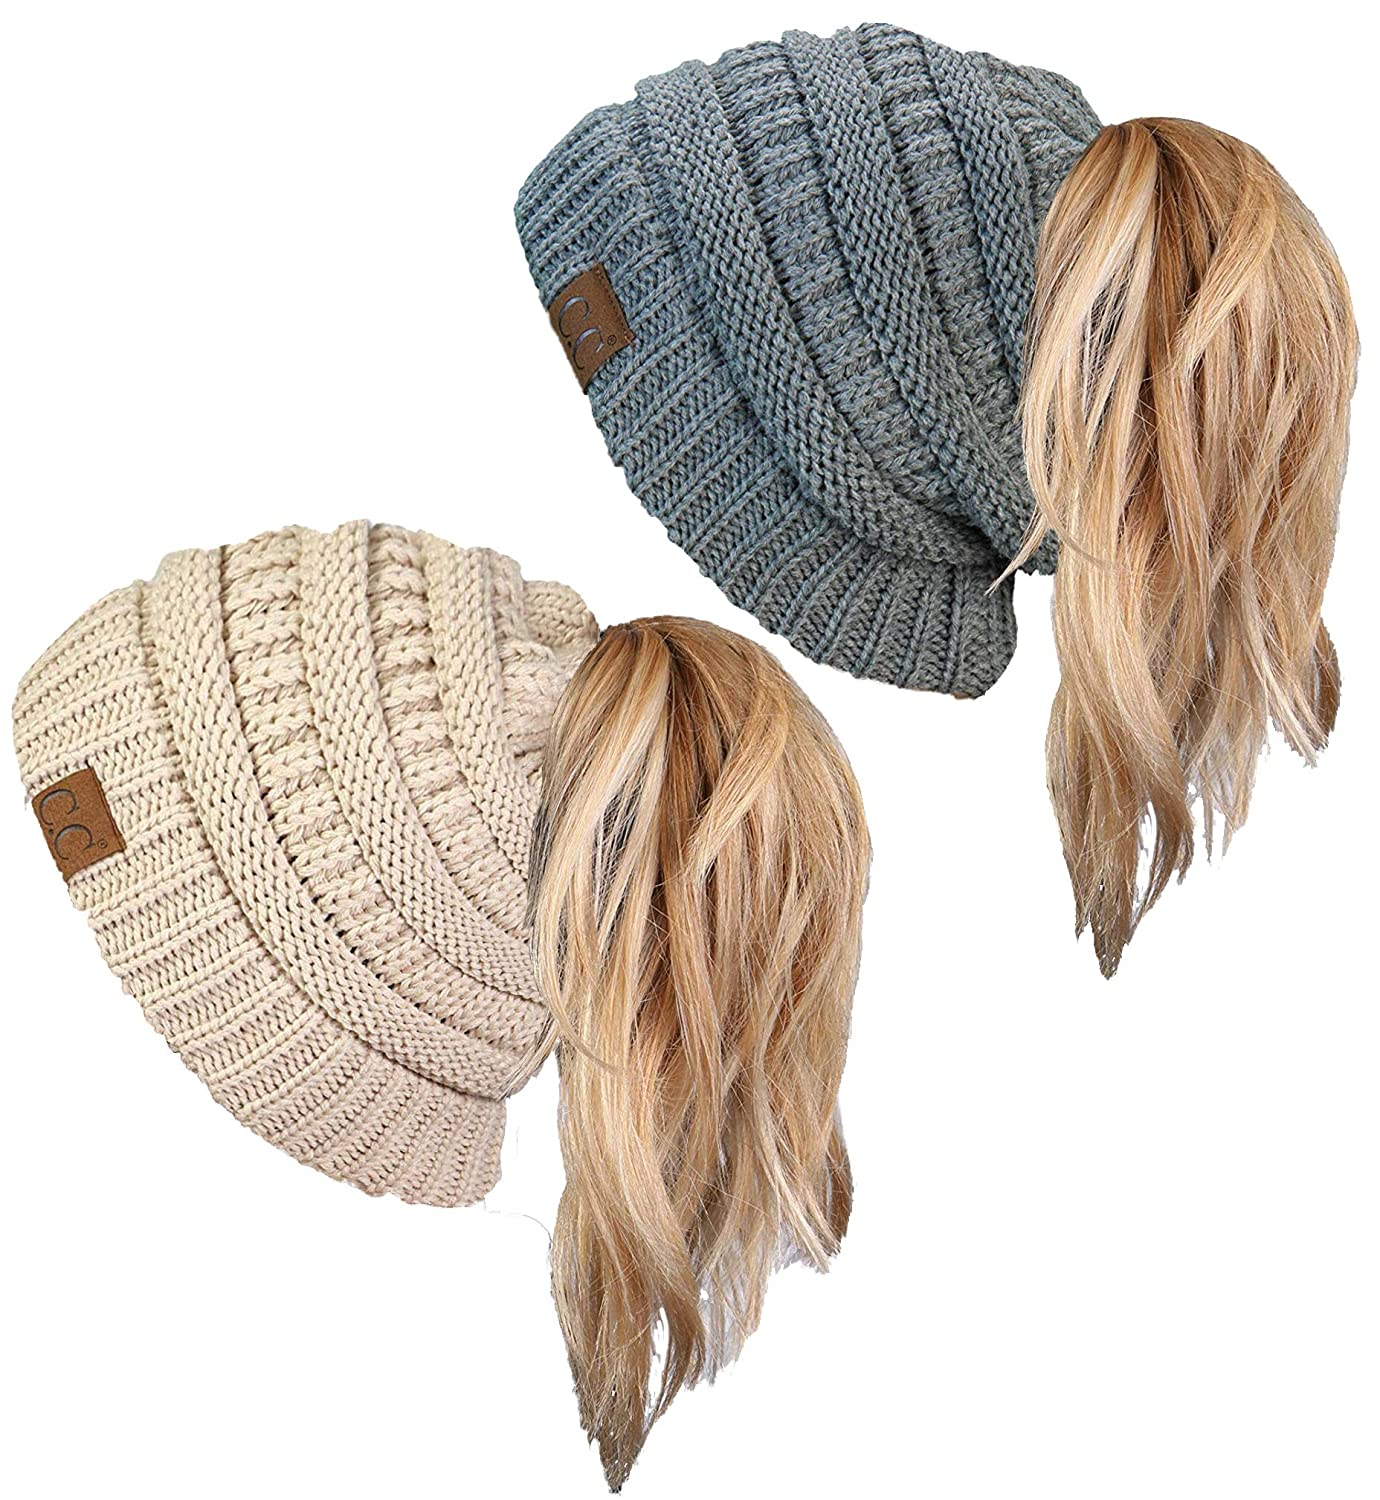 cf3878c0b69255 BT-6020a-2-0660 Solid Messy Bun Beanie Tail Bundle - 1 Black, 1 Beige (2  Pack) at Amazon Women's Clothing store: